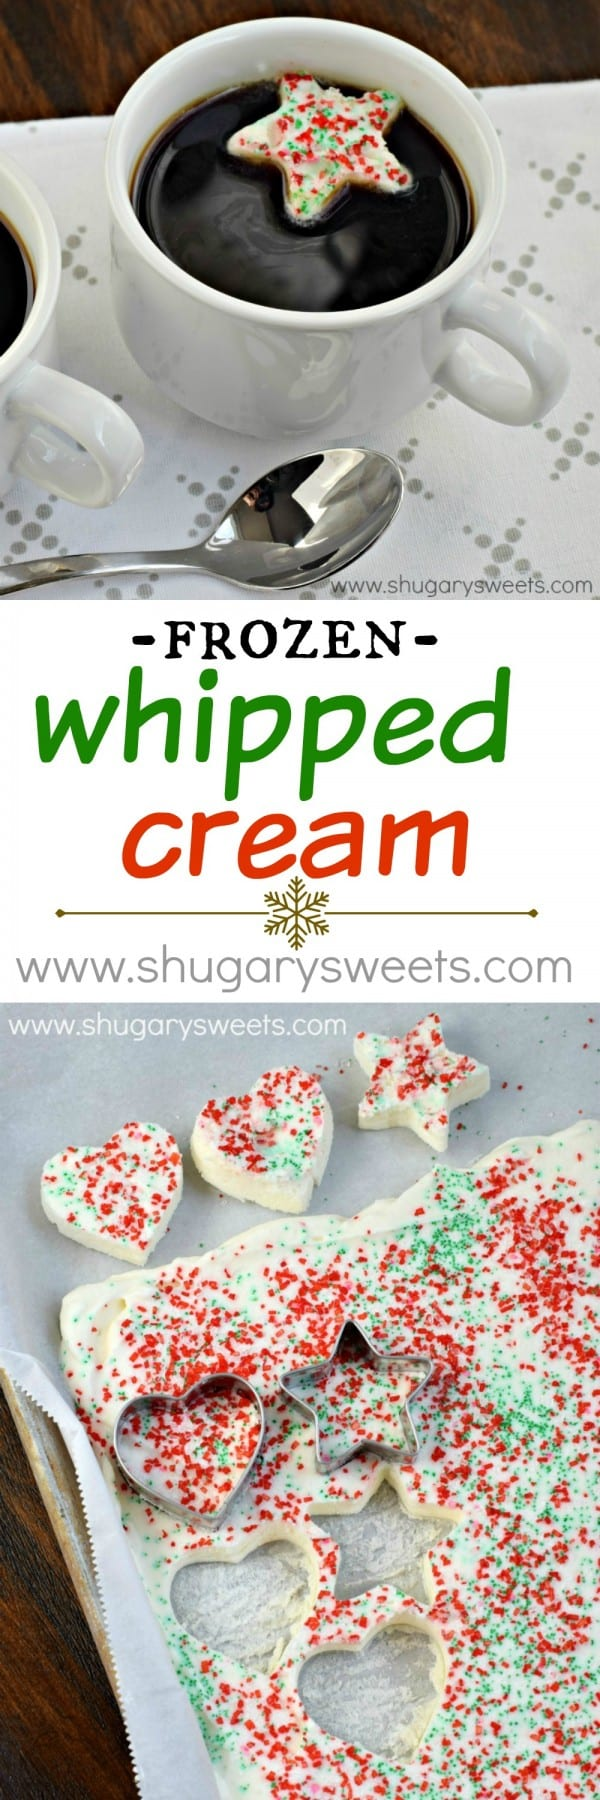 Classic Frozen Whipped Cream Topping to add fun and flavor to your hot beverage. Easy to make and prepare these ahead of time and store in your freezer for later!